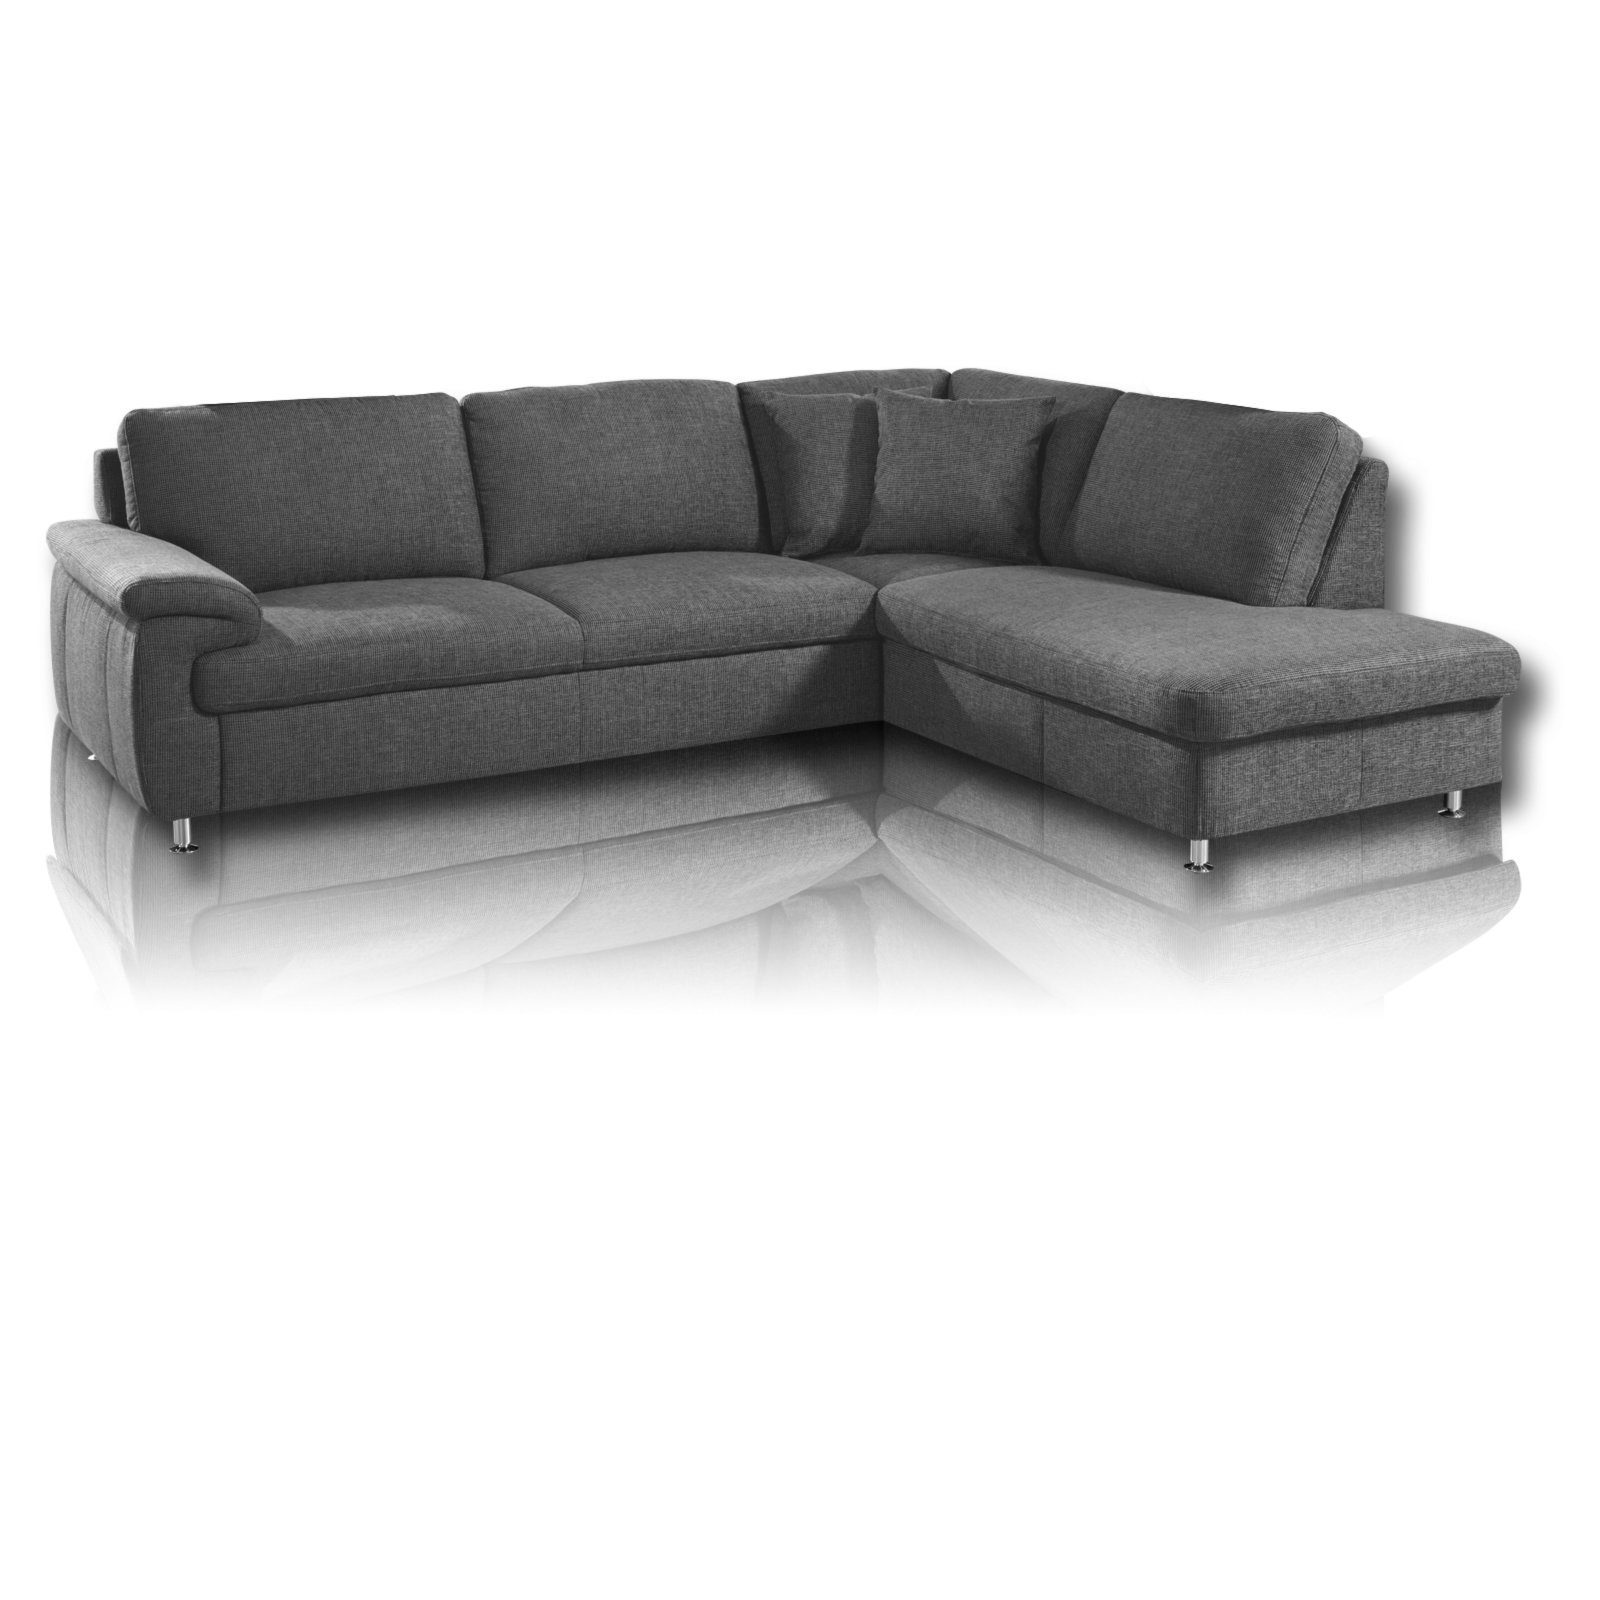 Ecksofa L Ecksofa Grau Ecksofas L Form Sofas And Couches Möbel